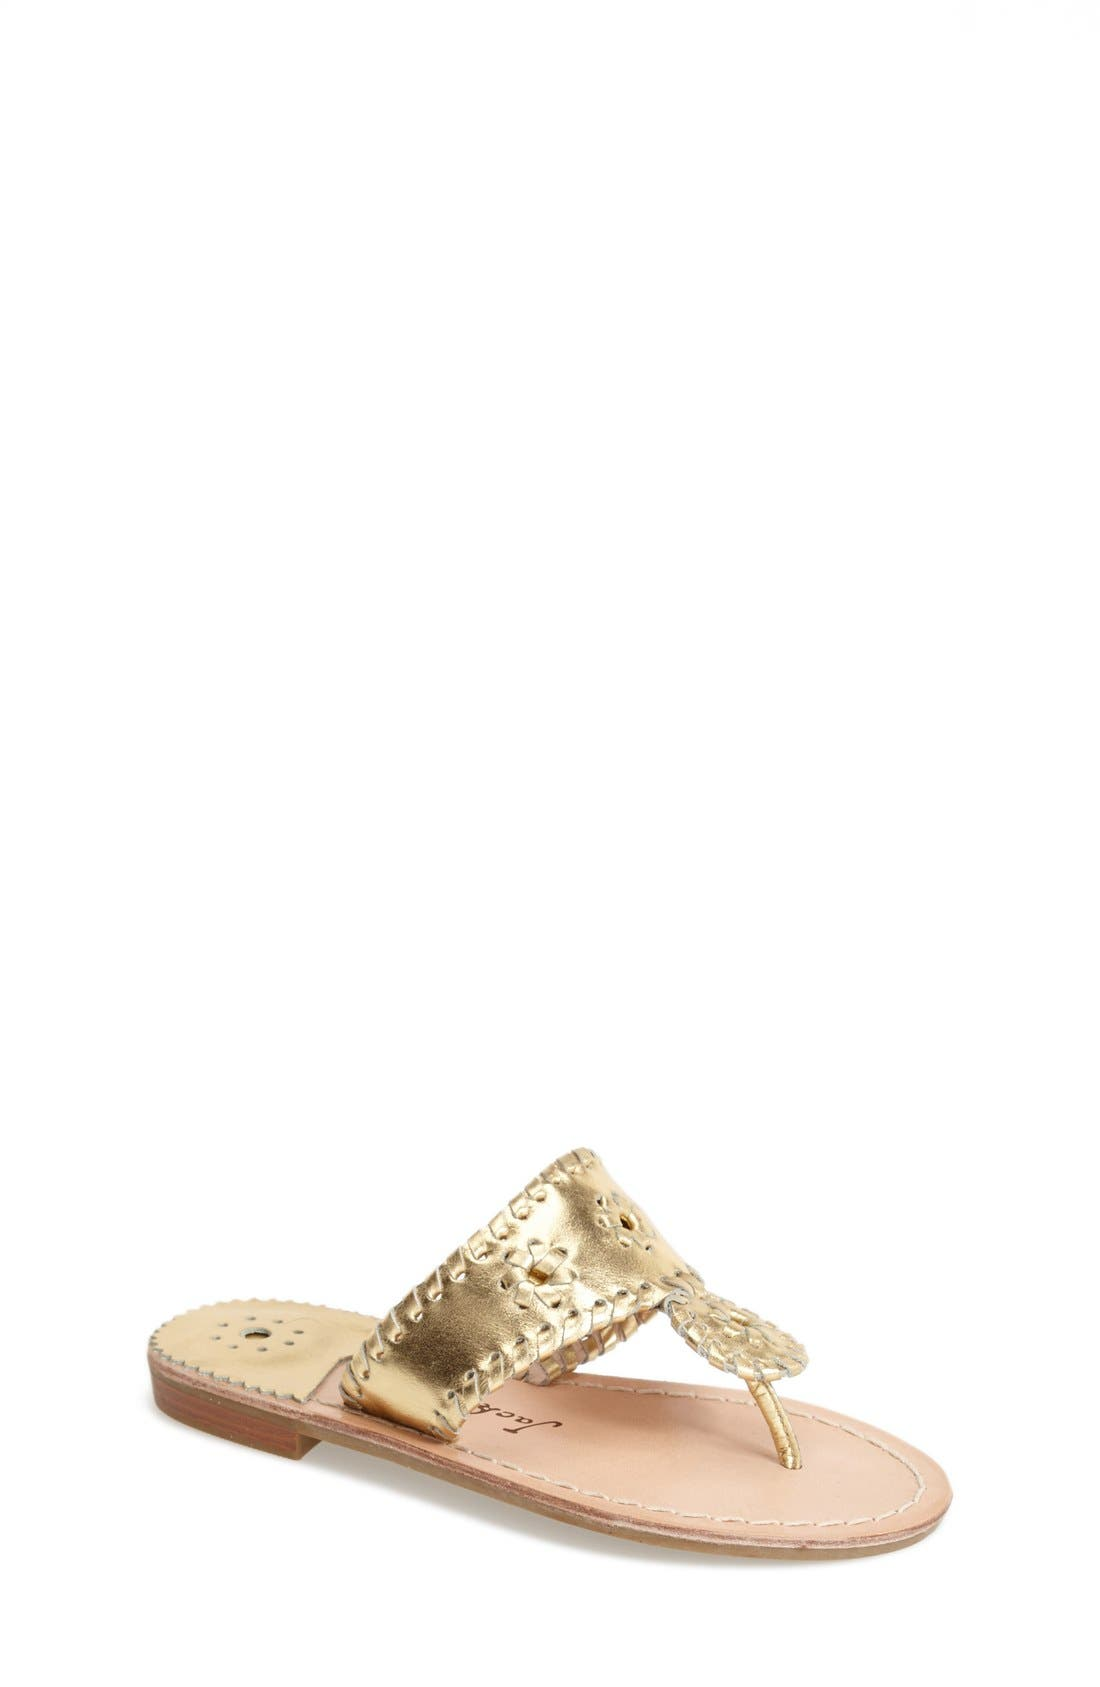 'Miss Hamptons' Sandal,                         Main,                         color, Gold